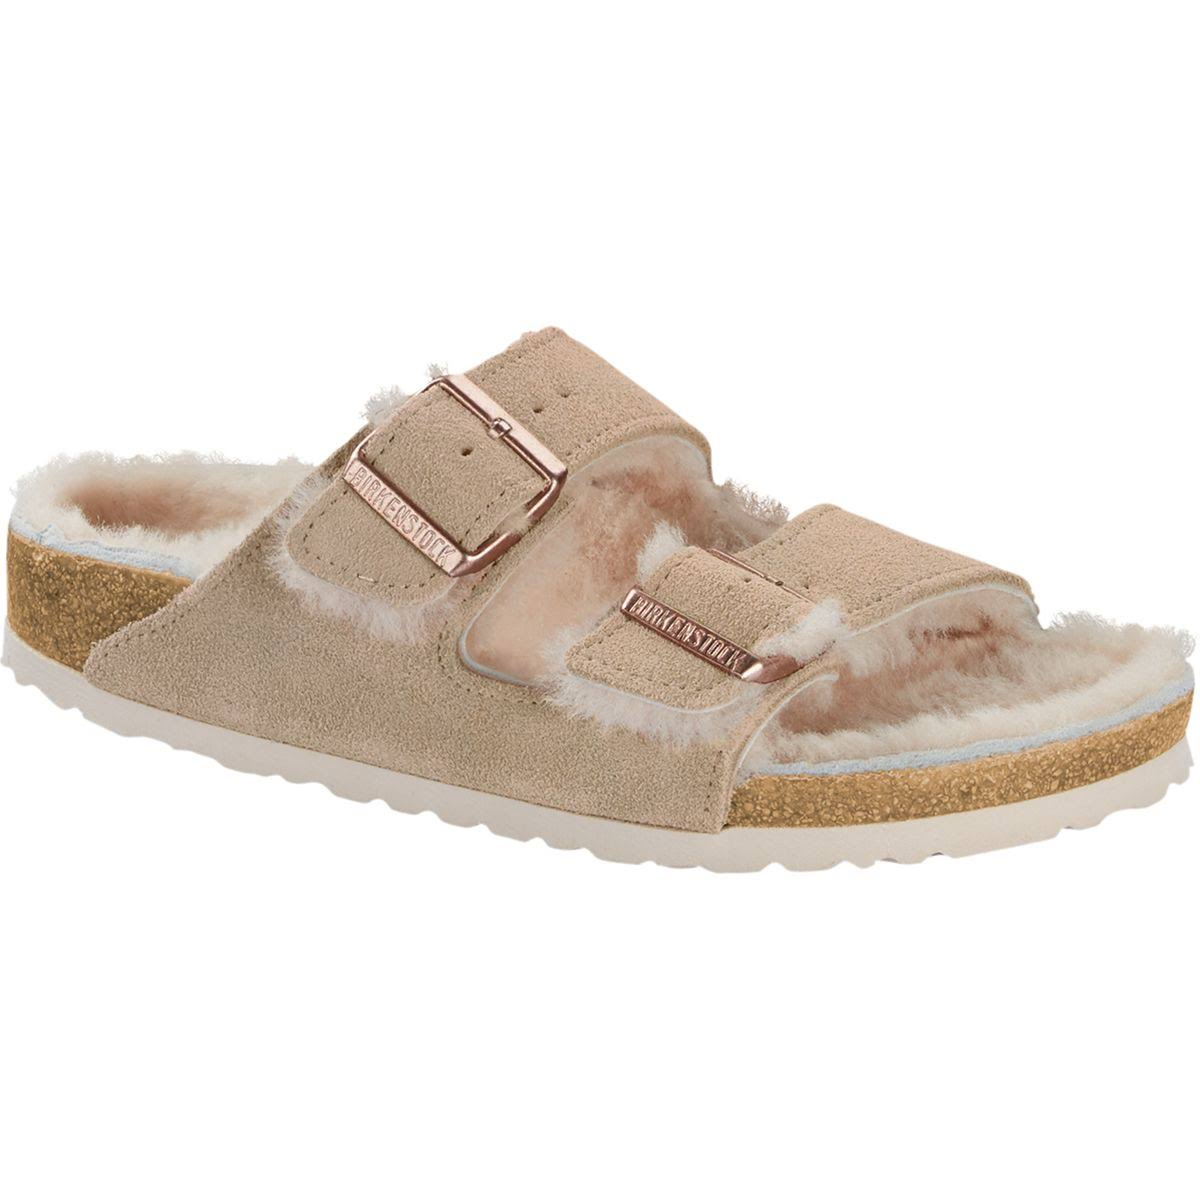 \Birkenstock Women's Arizona Shearling-Lined Suede Sandals - Nude, 37 EU